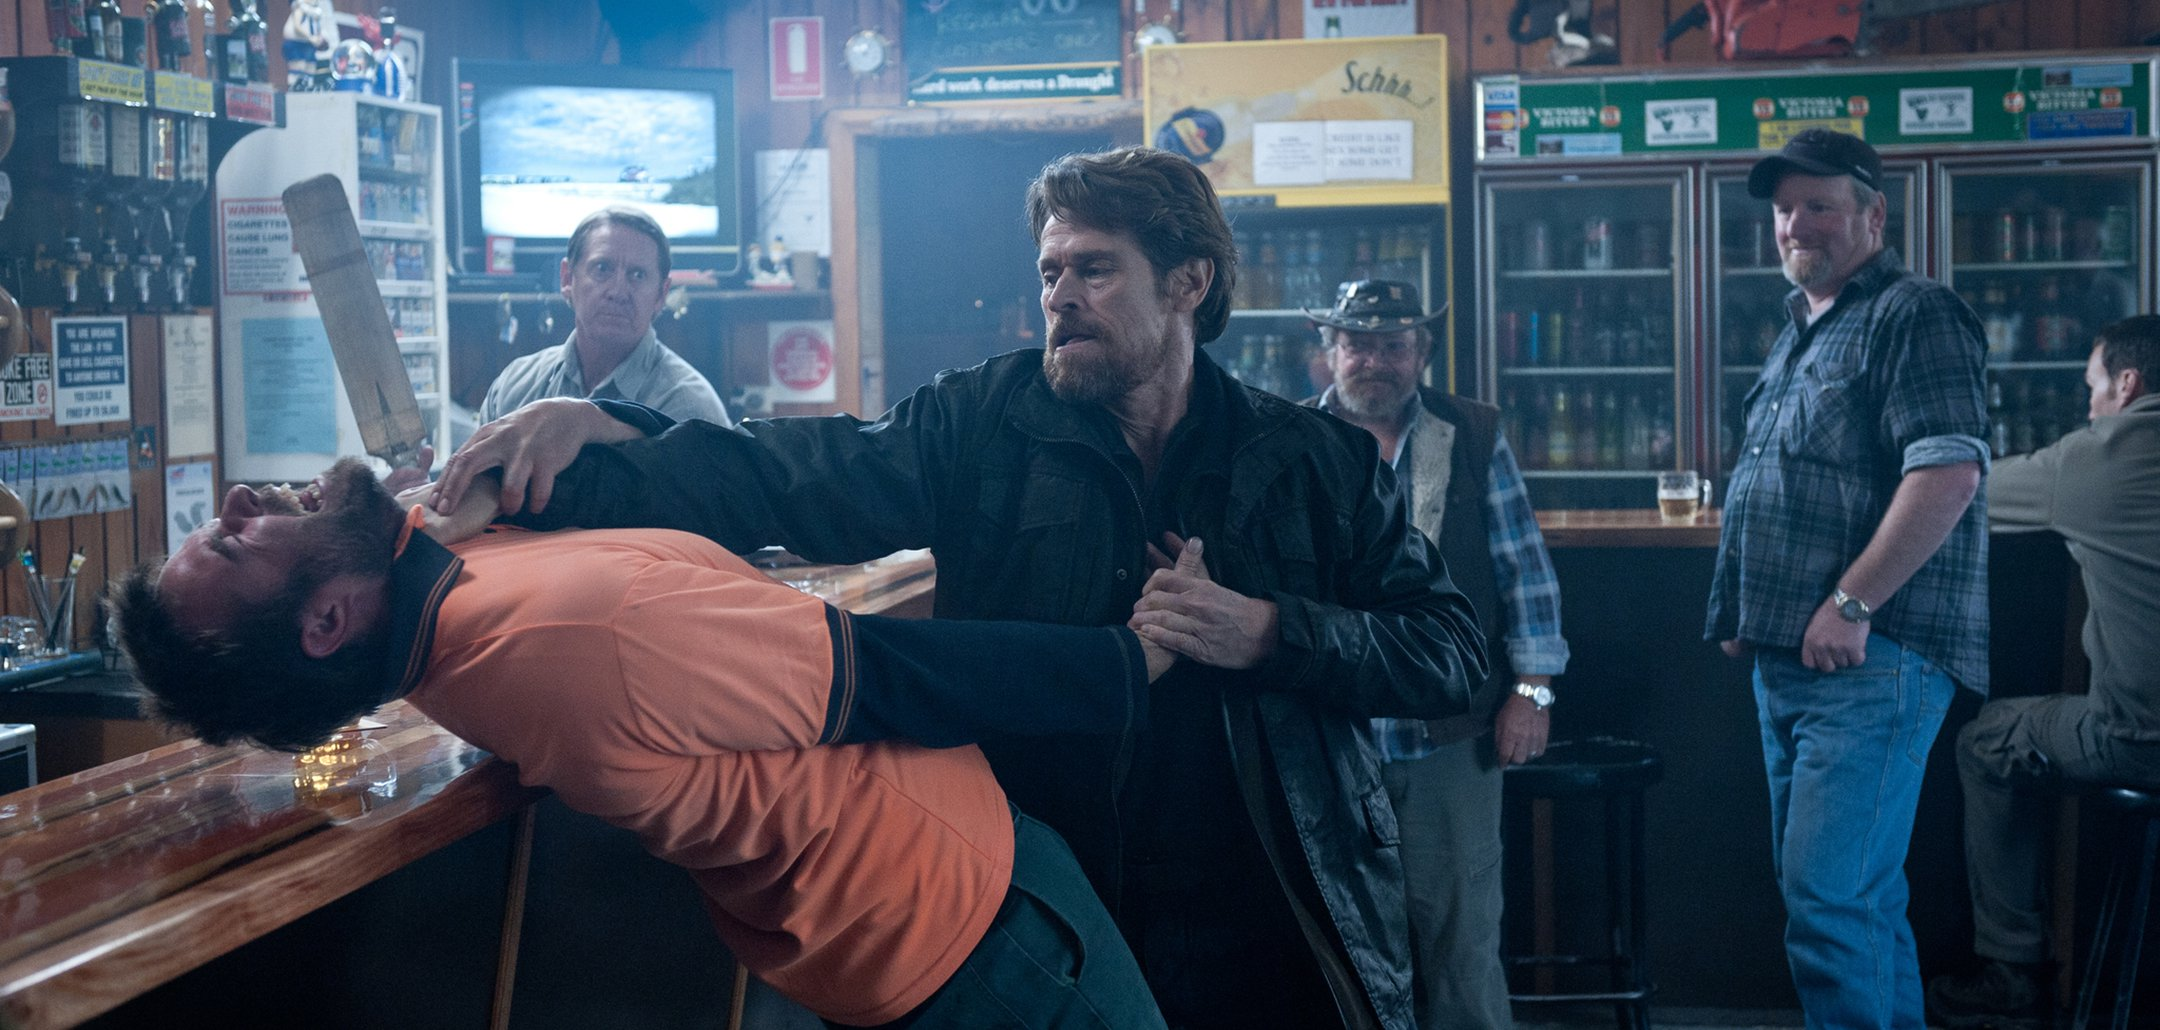 Willem Dafoe involved in a bar fight in a still from 'The Hunter' (2011)